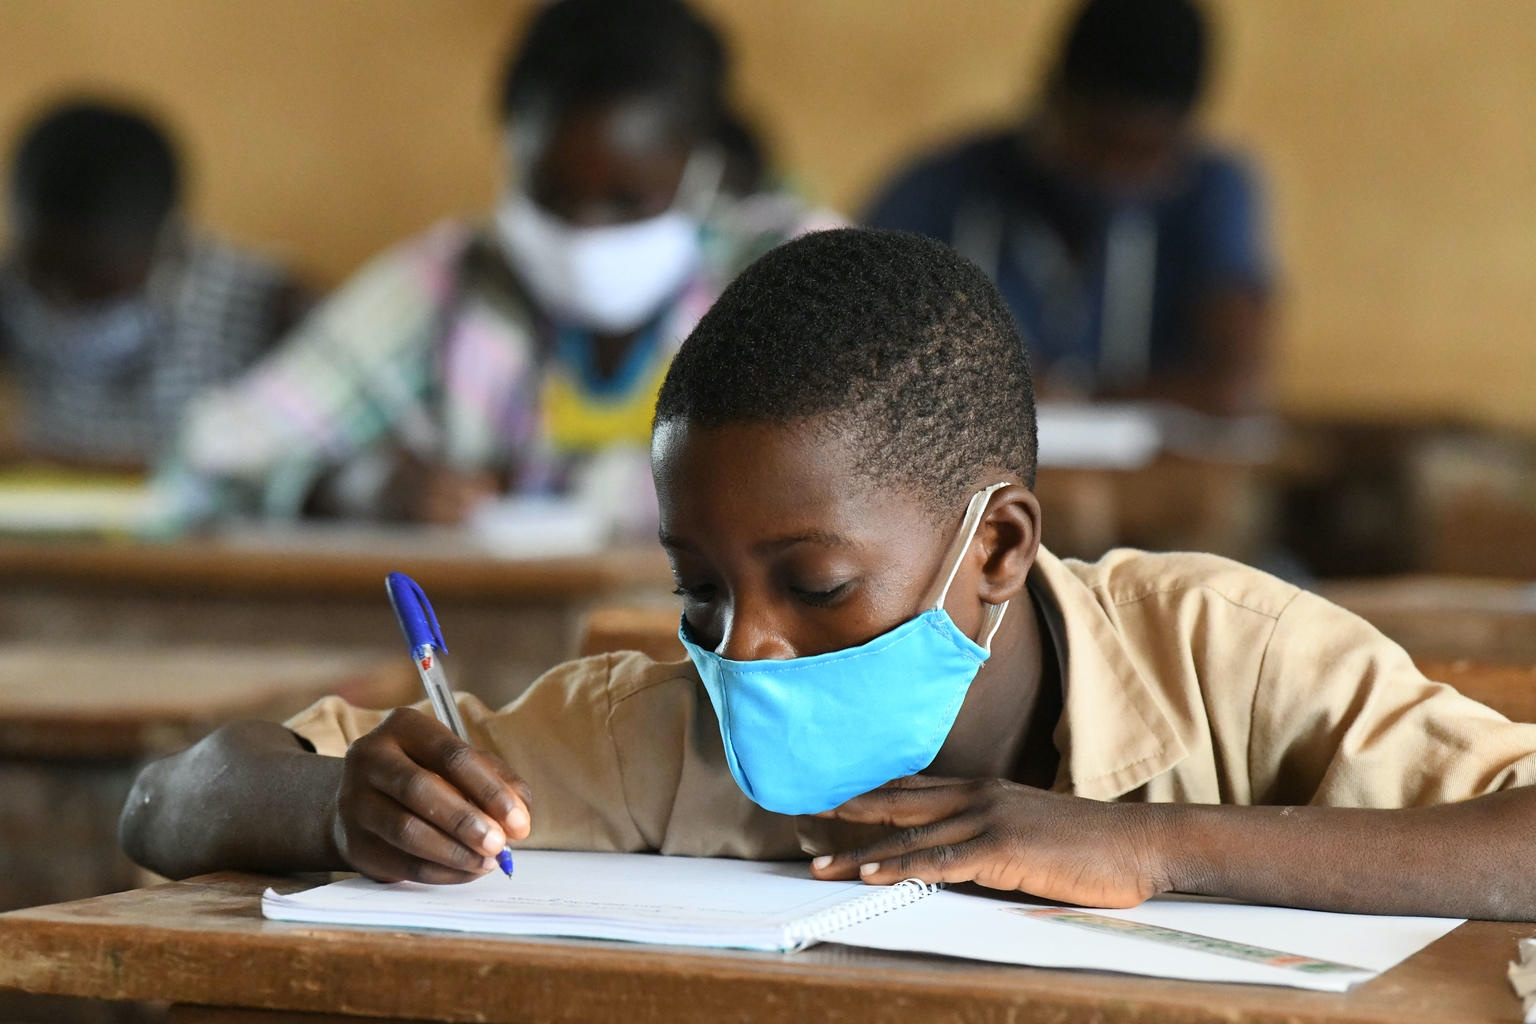 Lessons from Ebola: how to reach the poorest children when schools reopen - UNICEF Connect